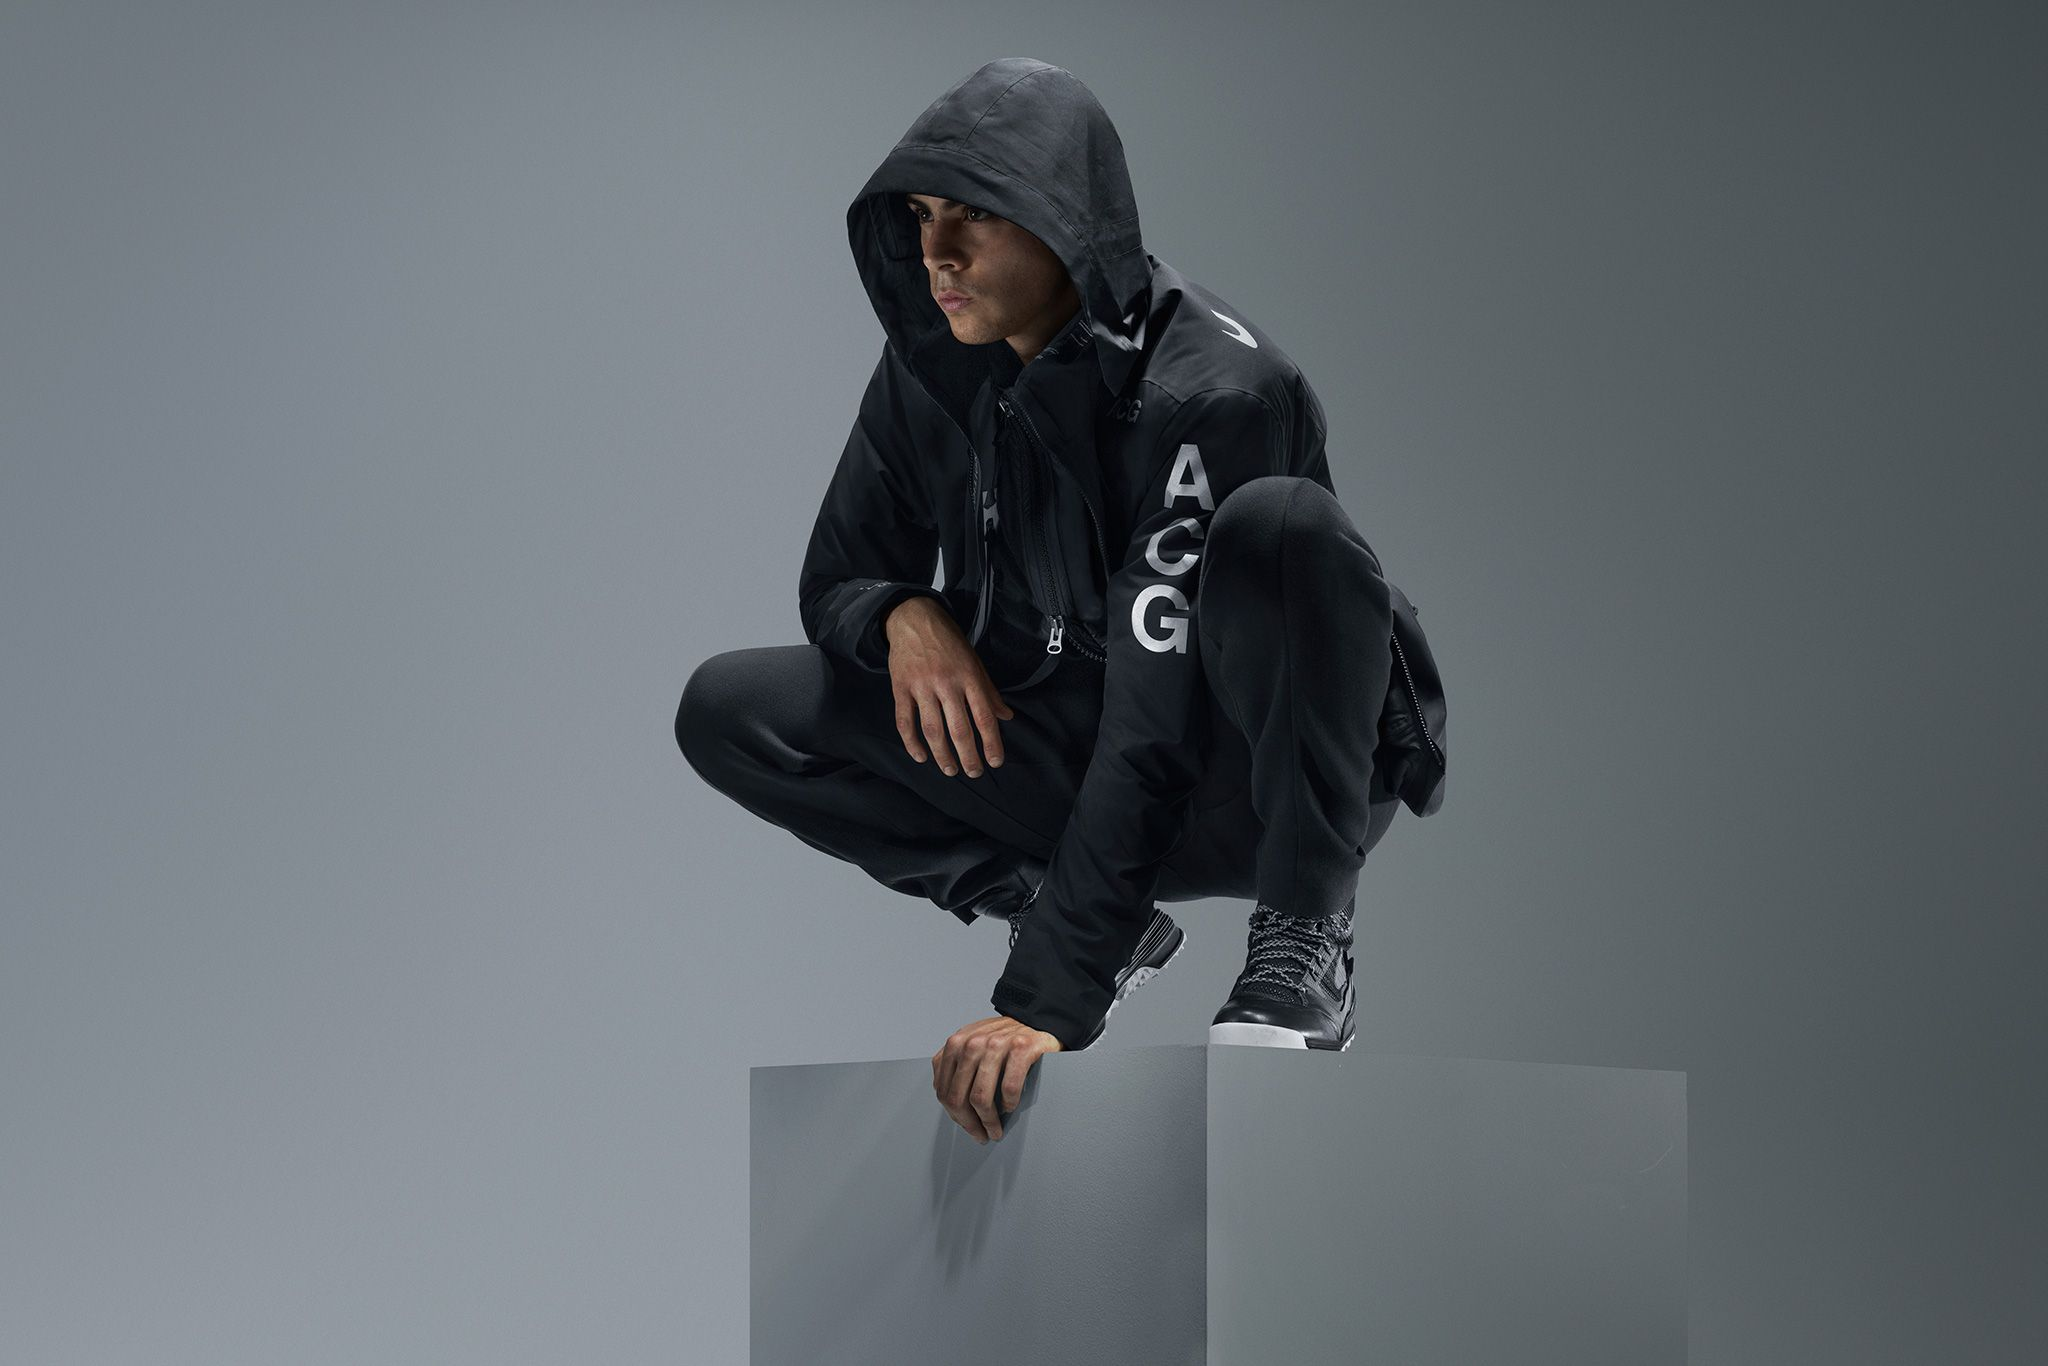 NikeLab Presents a New Direction for ACG Bringing Outdoor Gear to